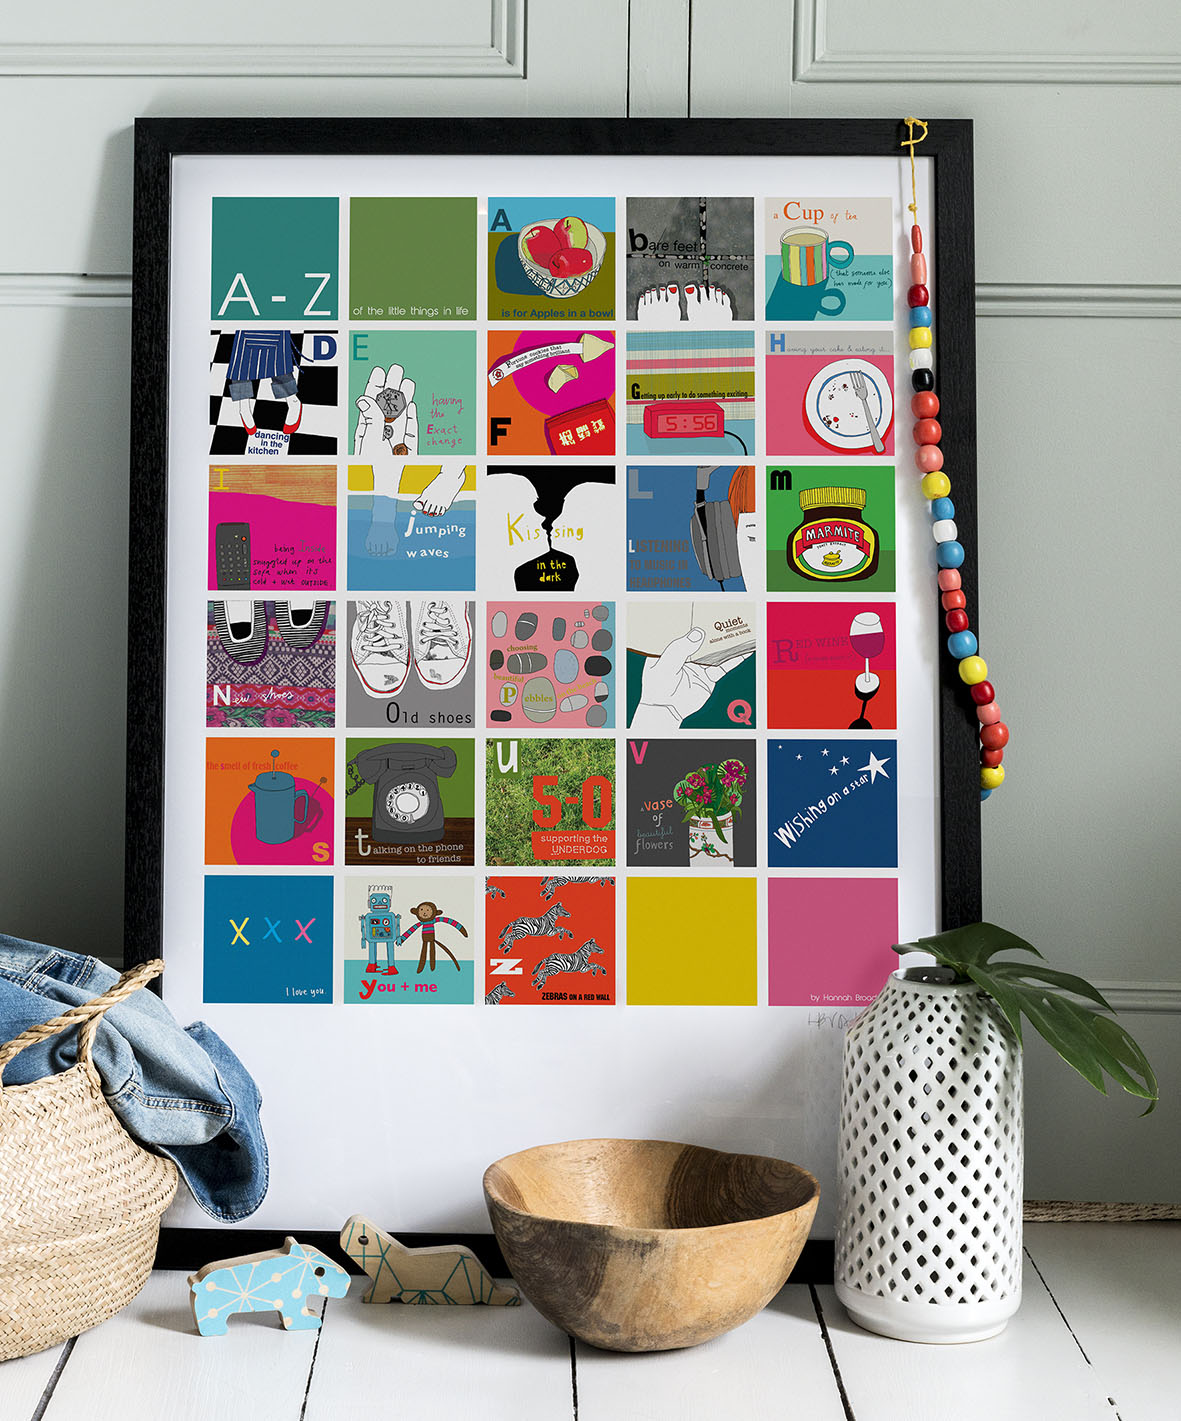 Brightening up any home with a good dose of celebration of the A-Z of the Little Things in Life. A1 framed print by Hannah Broadway.